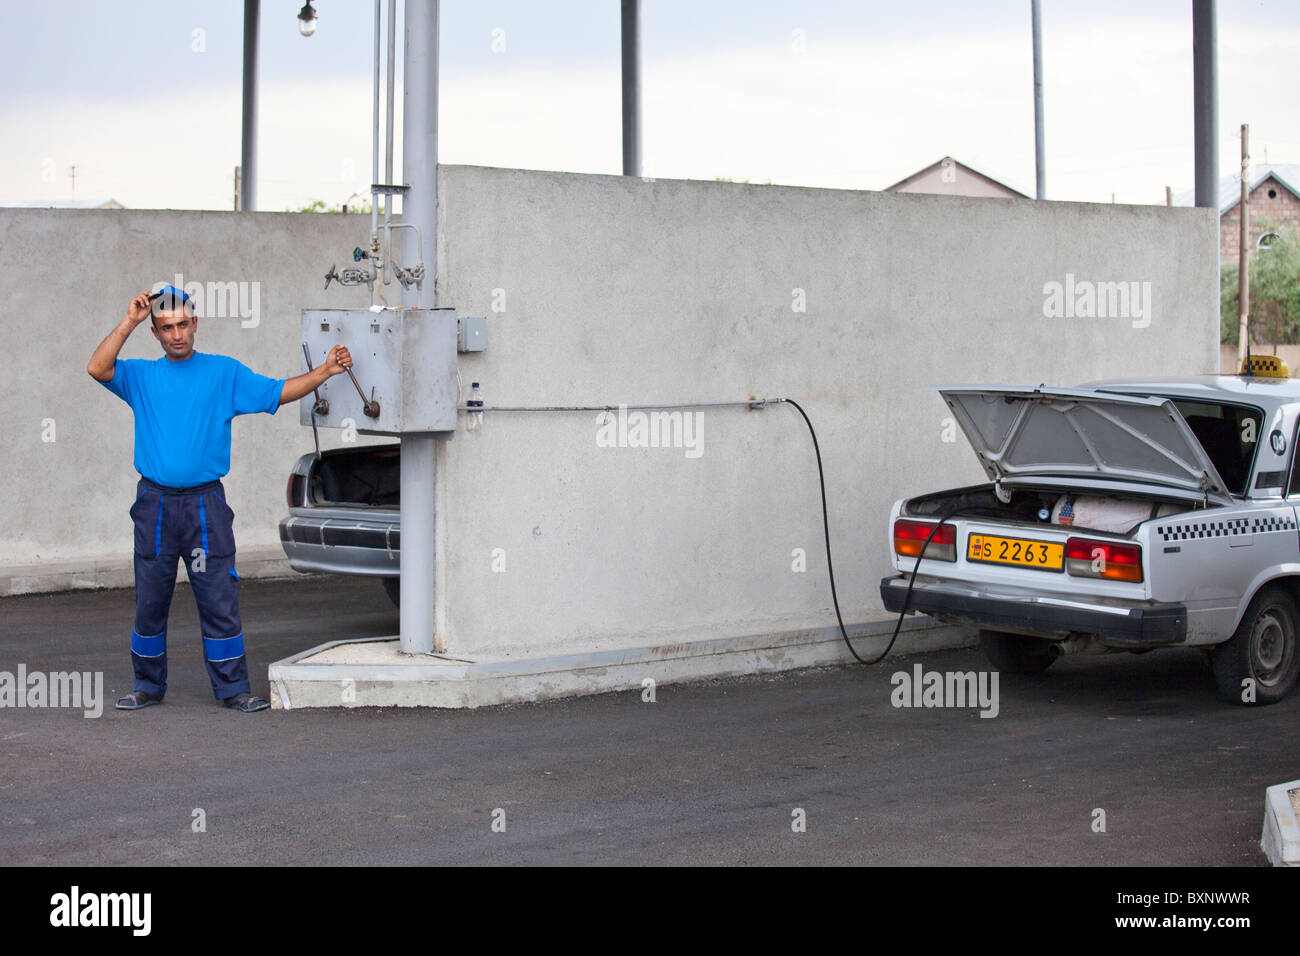 Attendant stands aside for saftey, CNG, compressed natural gas station in Yerevan, Armenia - Stock Image